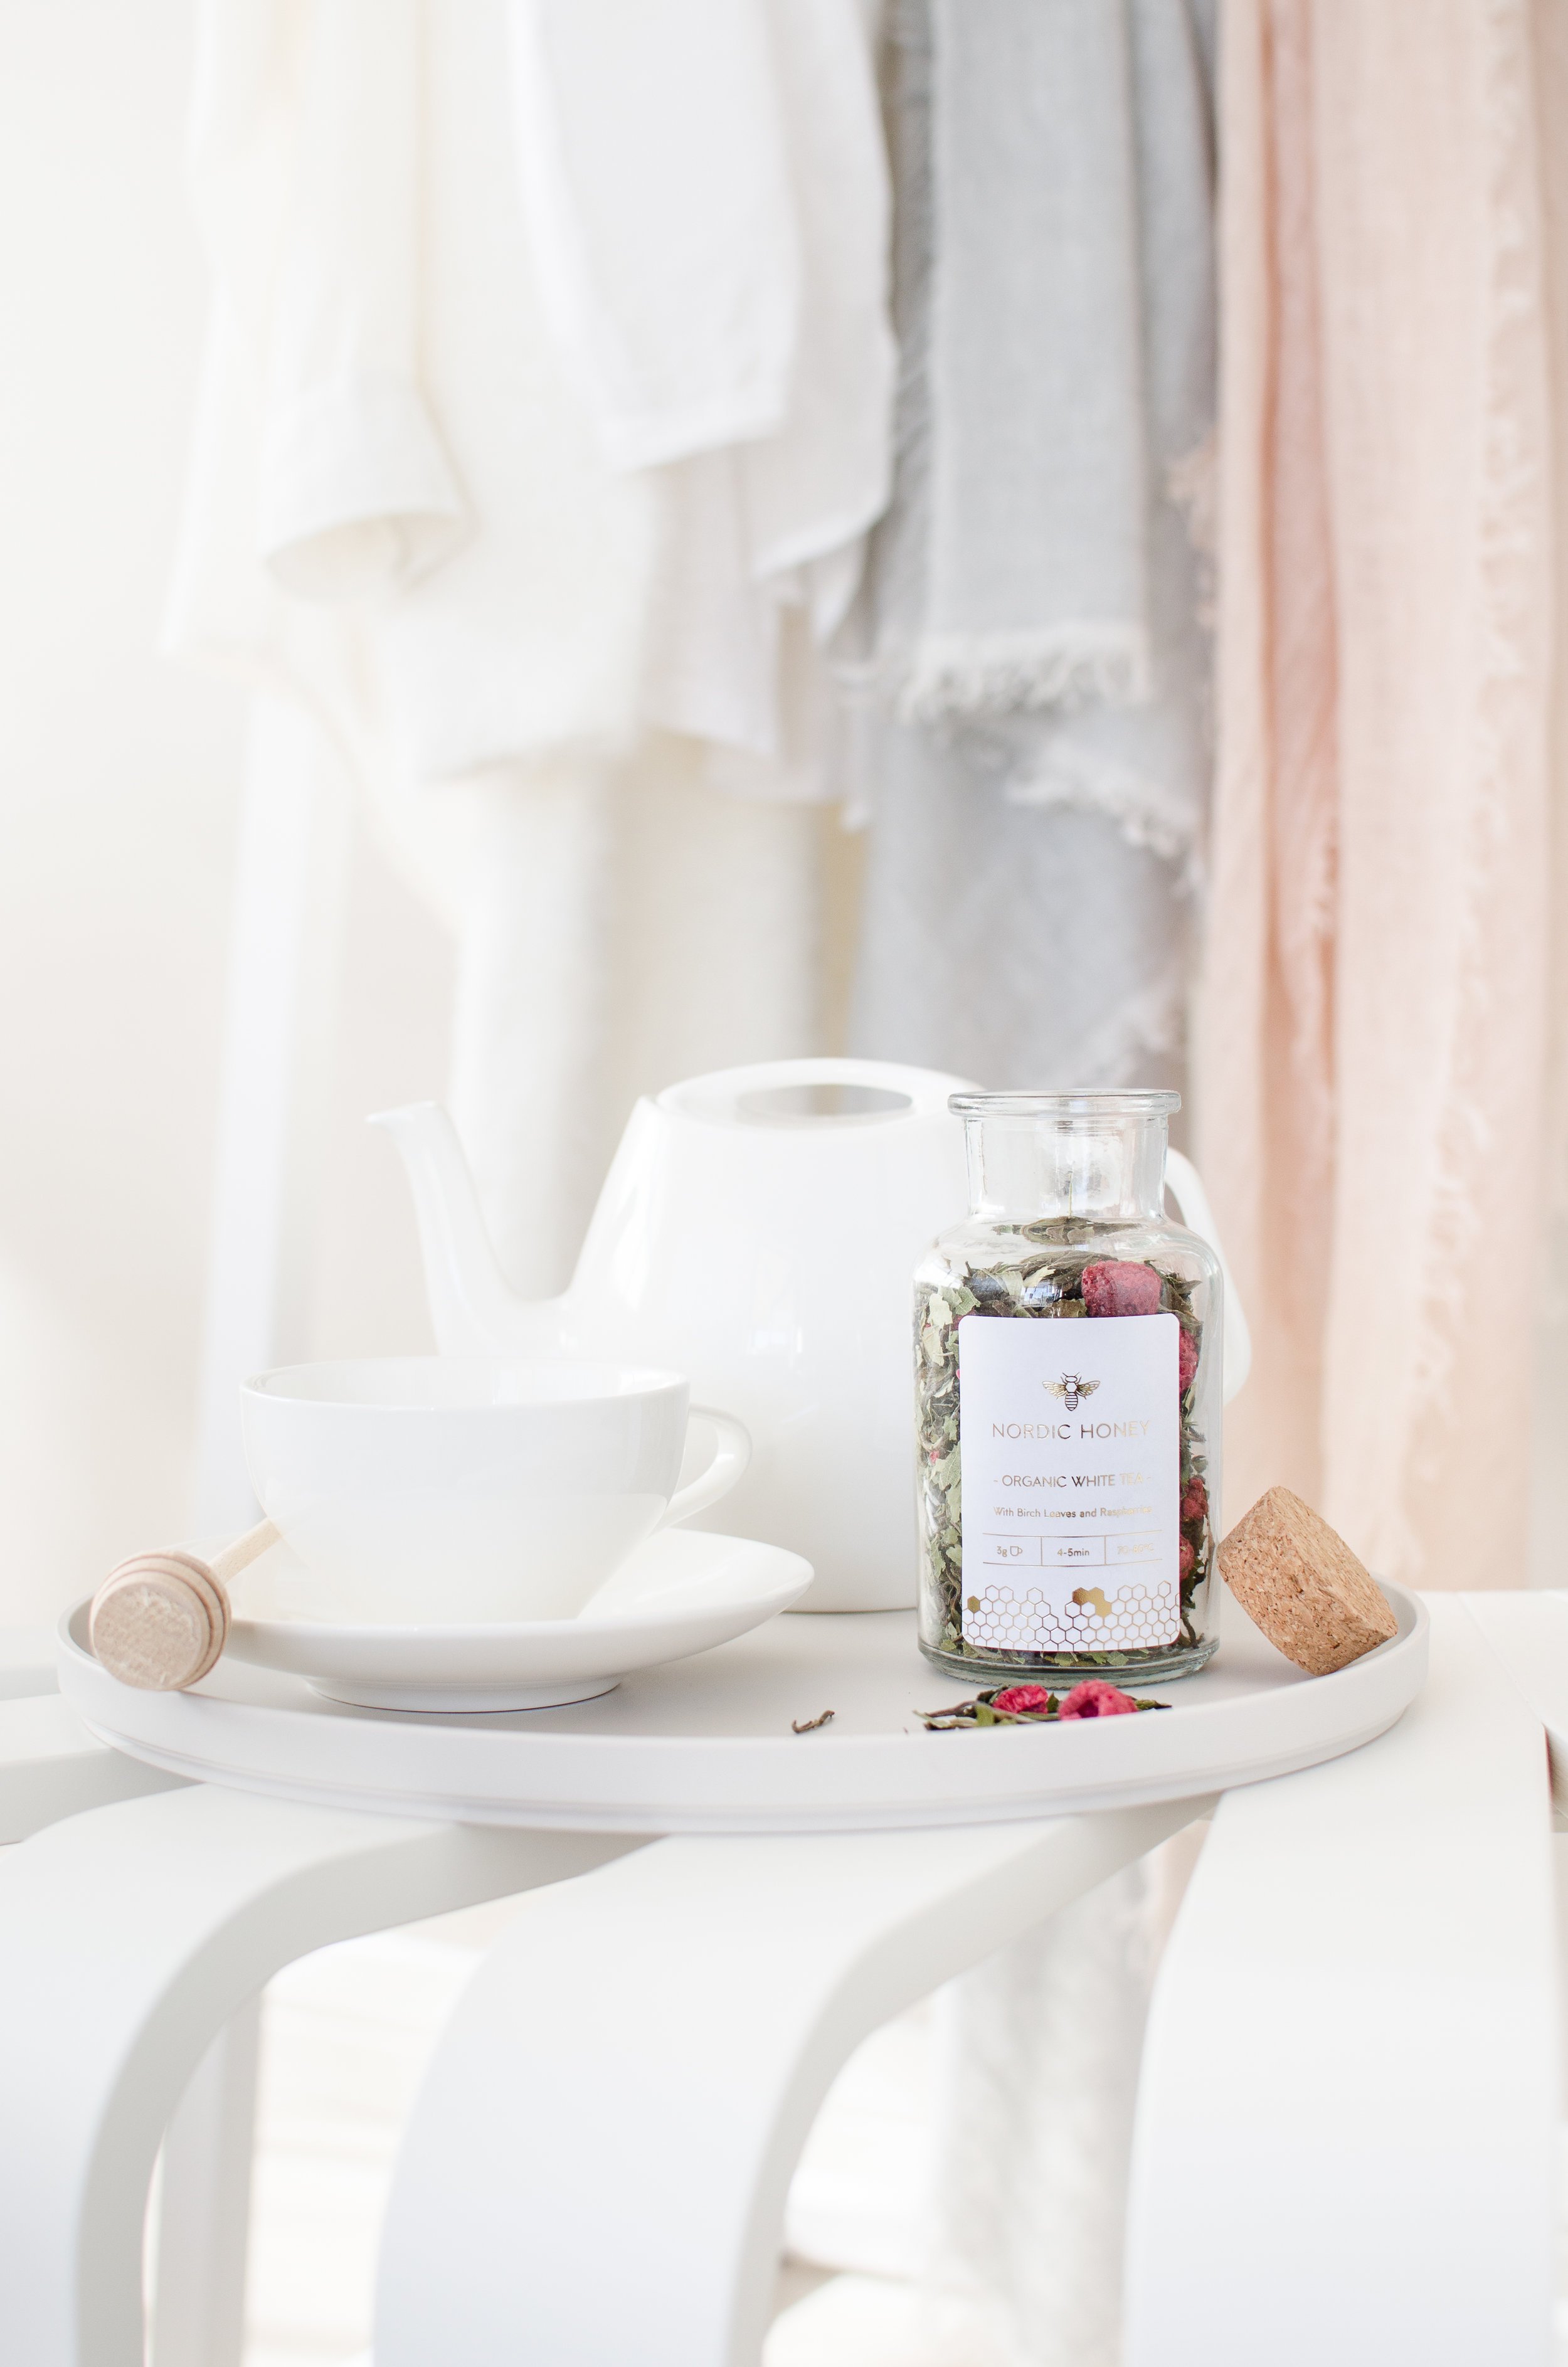 Nordic Honey_Health Benefits of White tea_White Tea with Birch Leaves & Raspberries_jar with cork.jpg